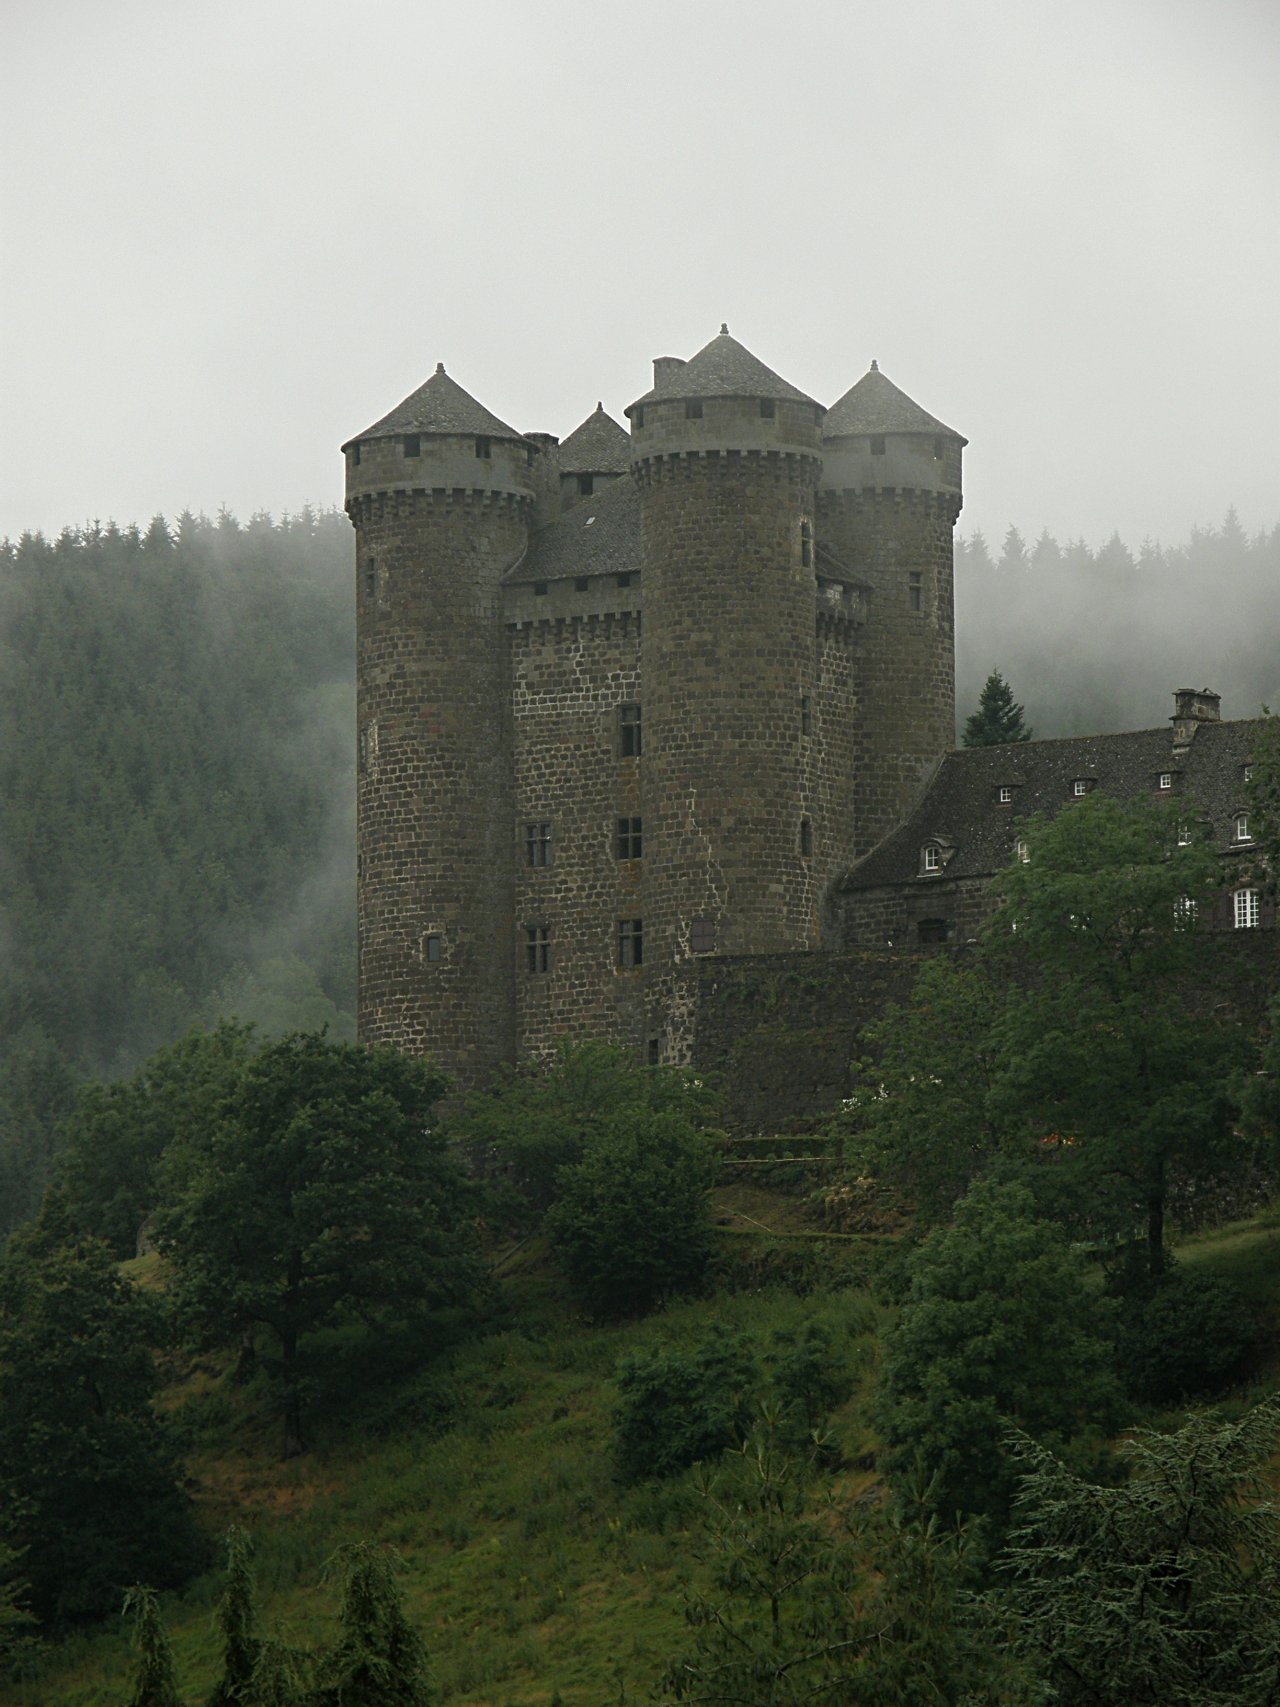 Anjony, Castles in France